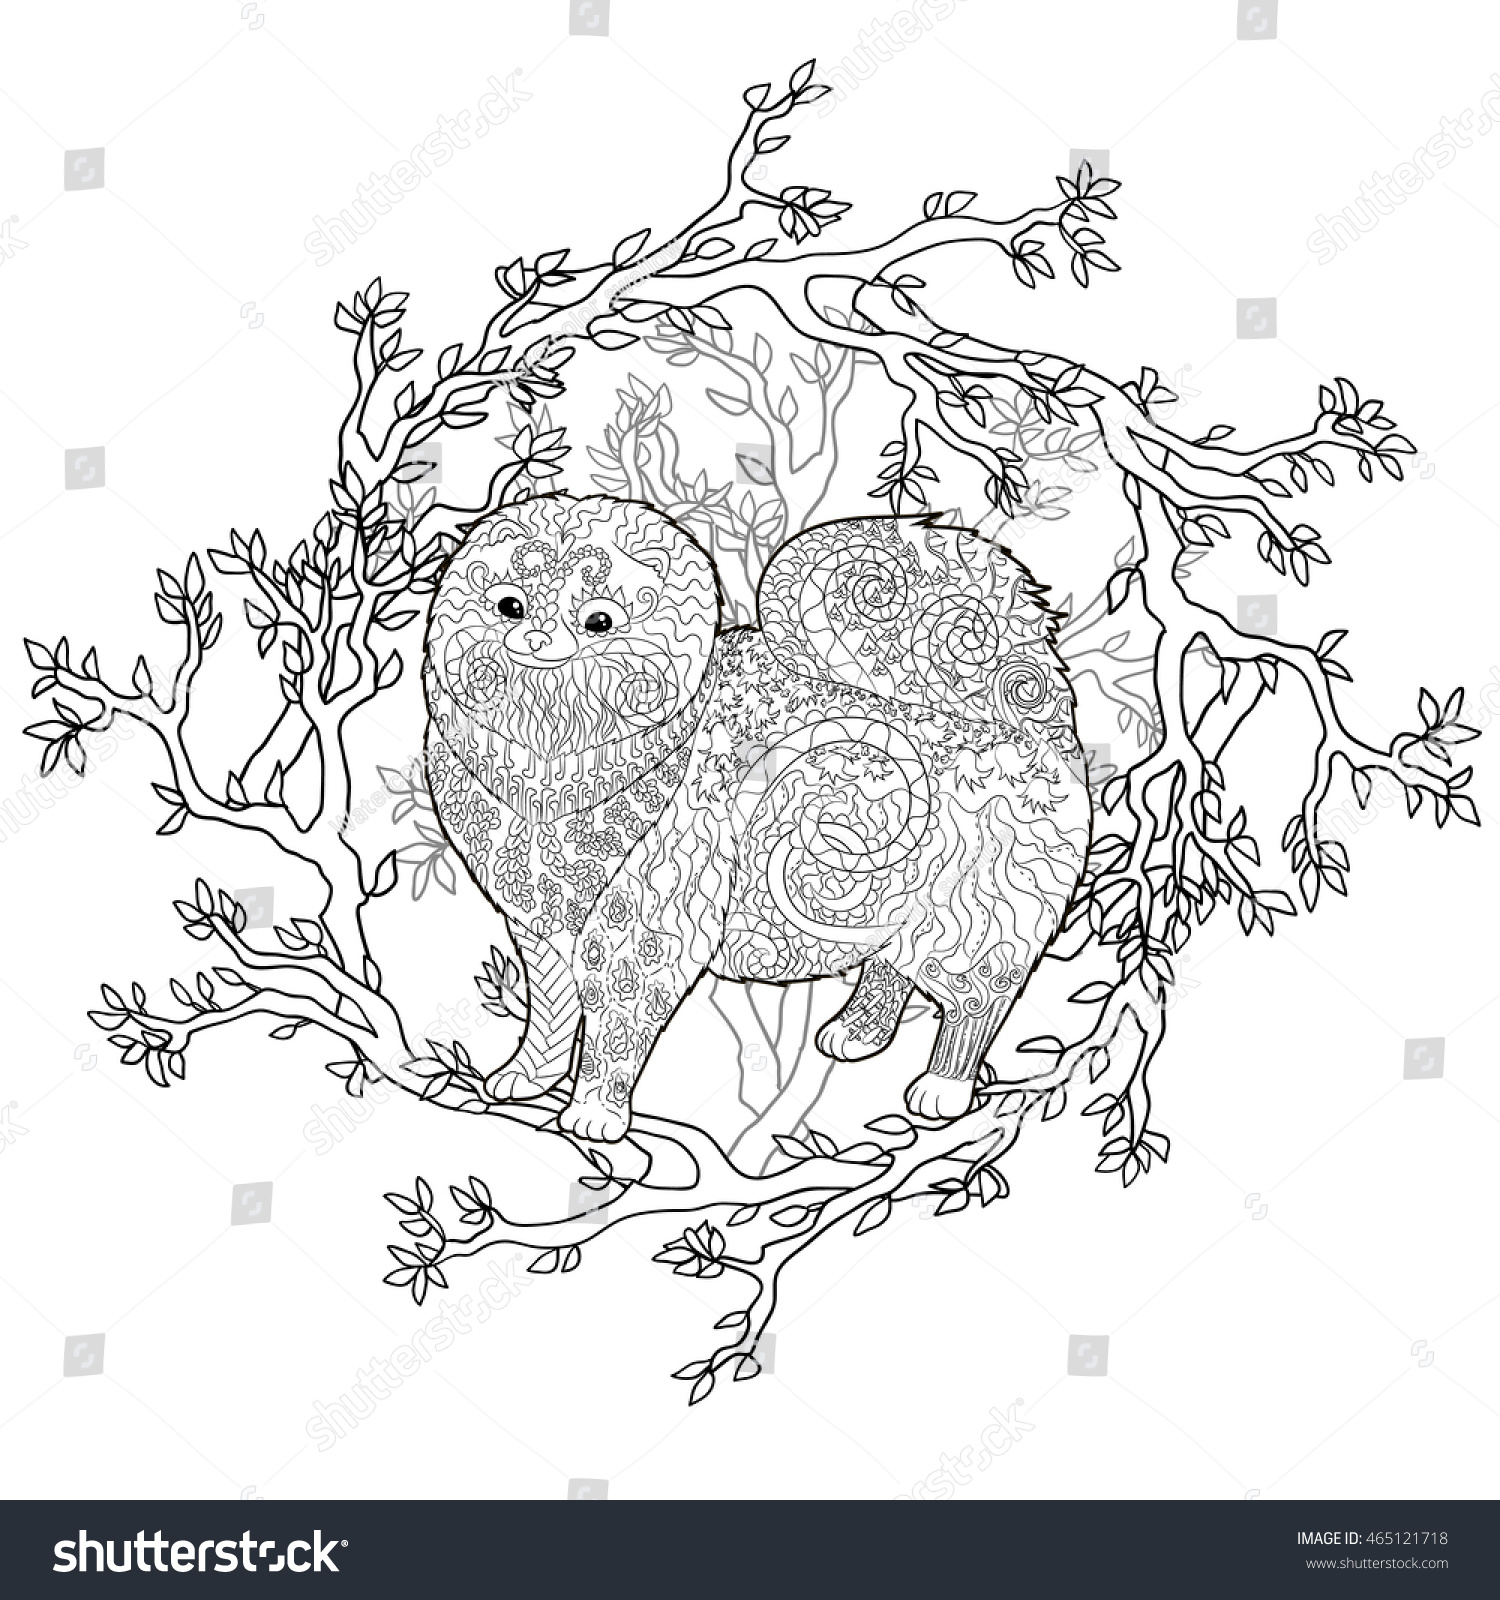 high detail patterned pomeranian dog in zentangle style adult